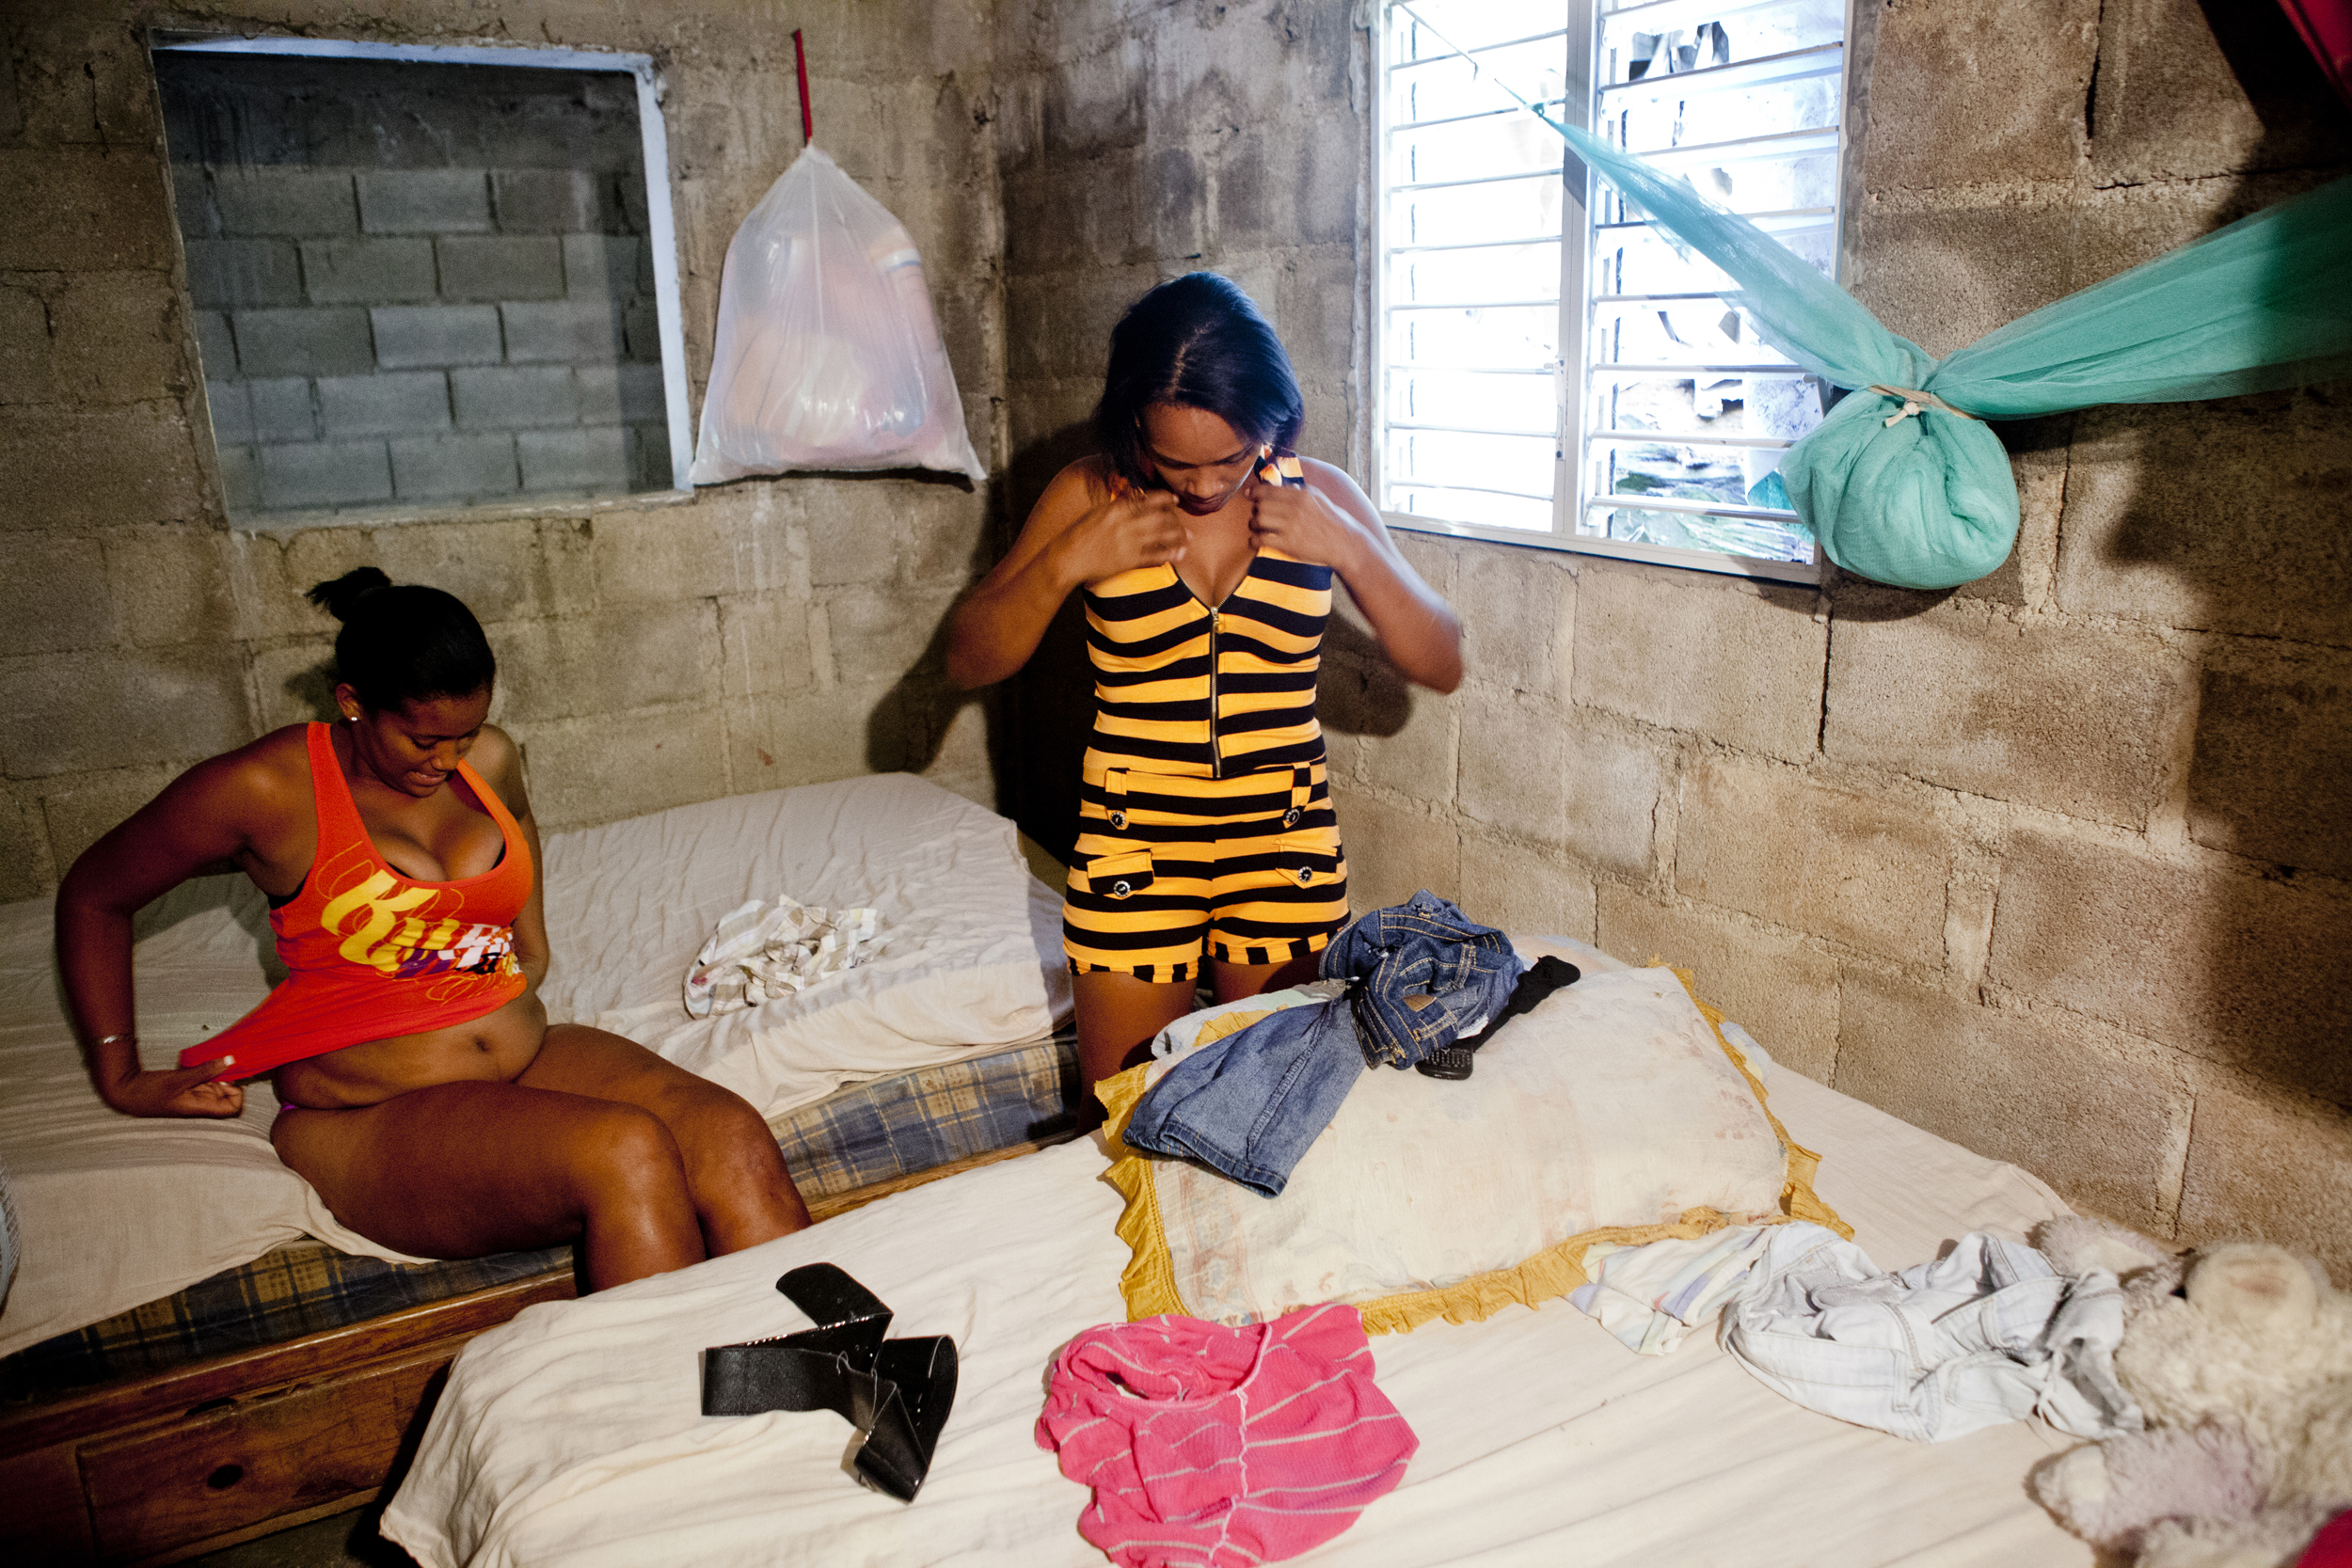 Yoleidi and Berenise get dressed to go out and work. The girls usually make $20-50 per client, and at most have two clients per day.